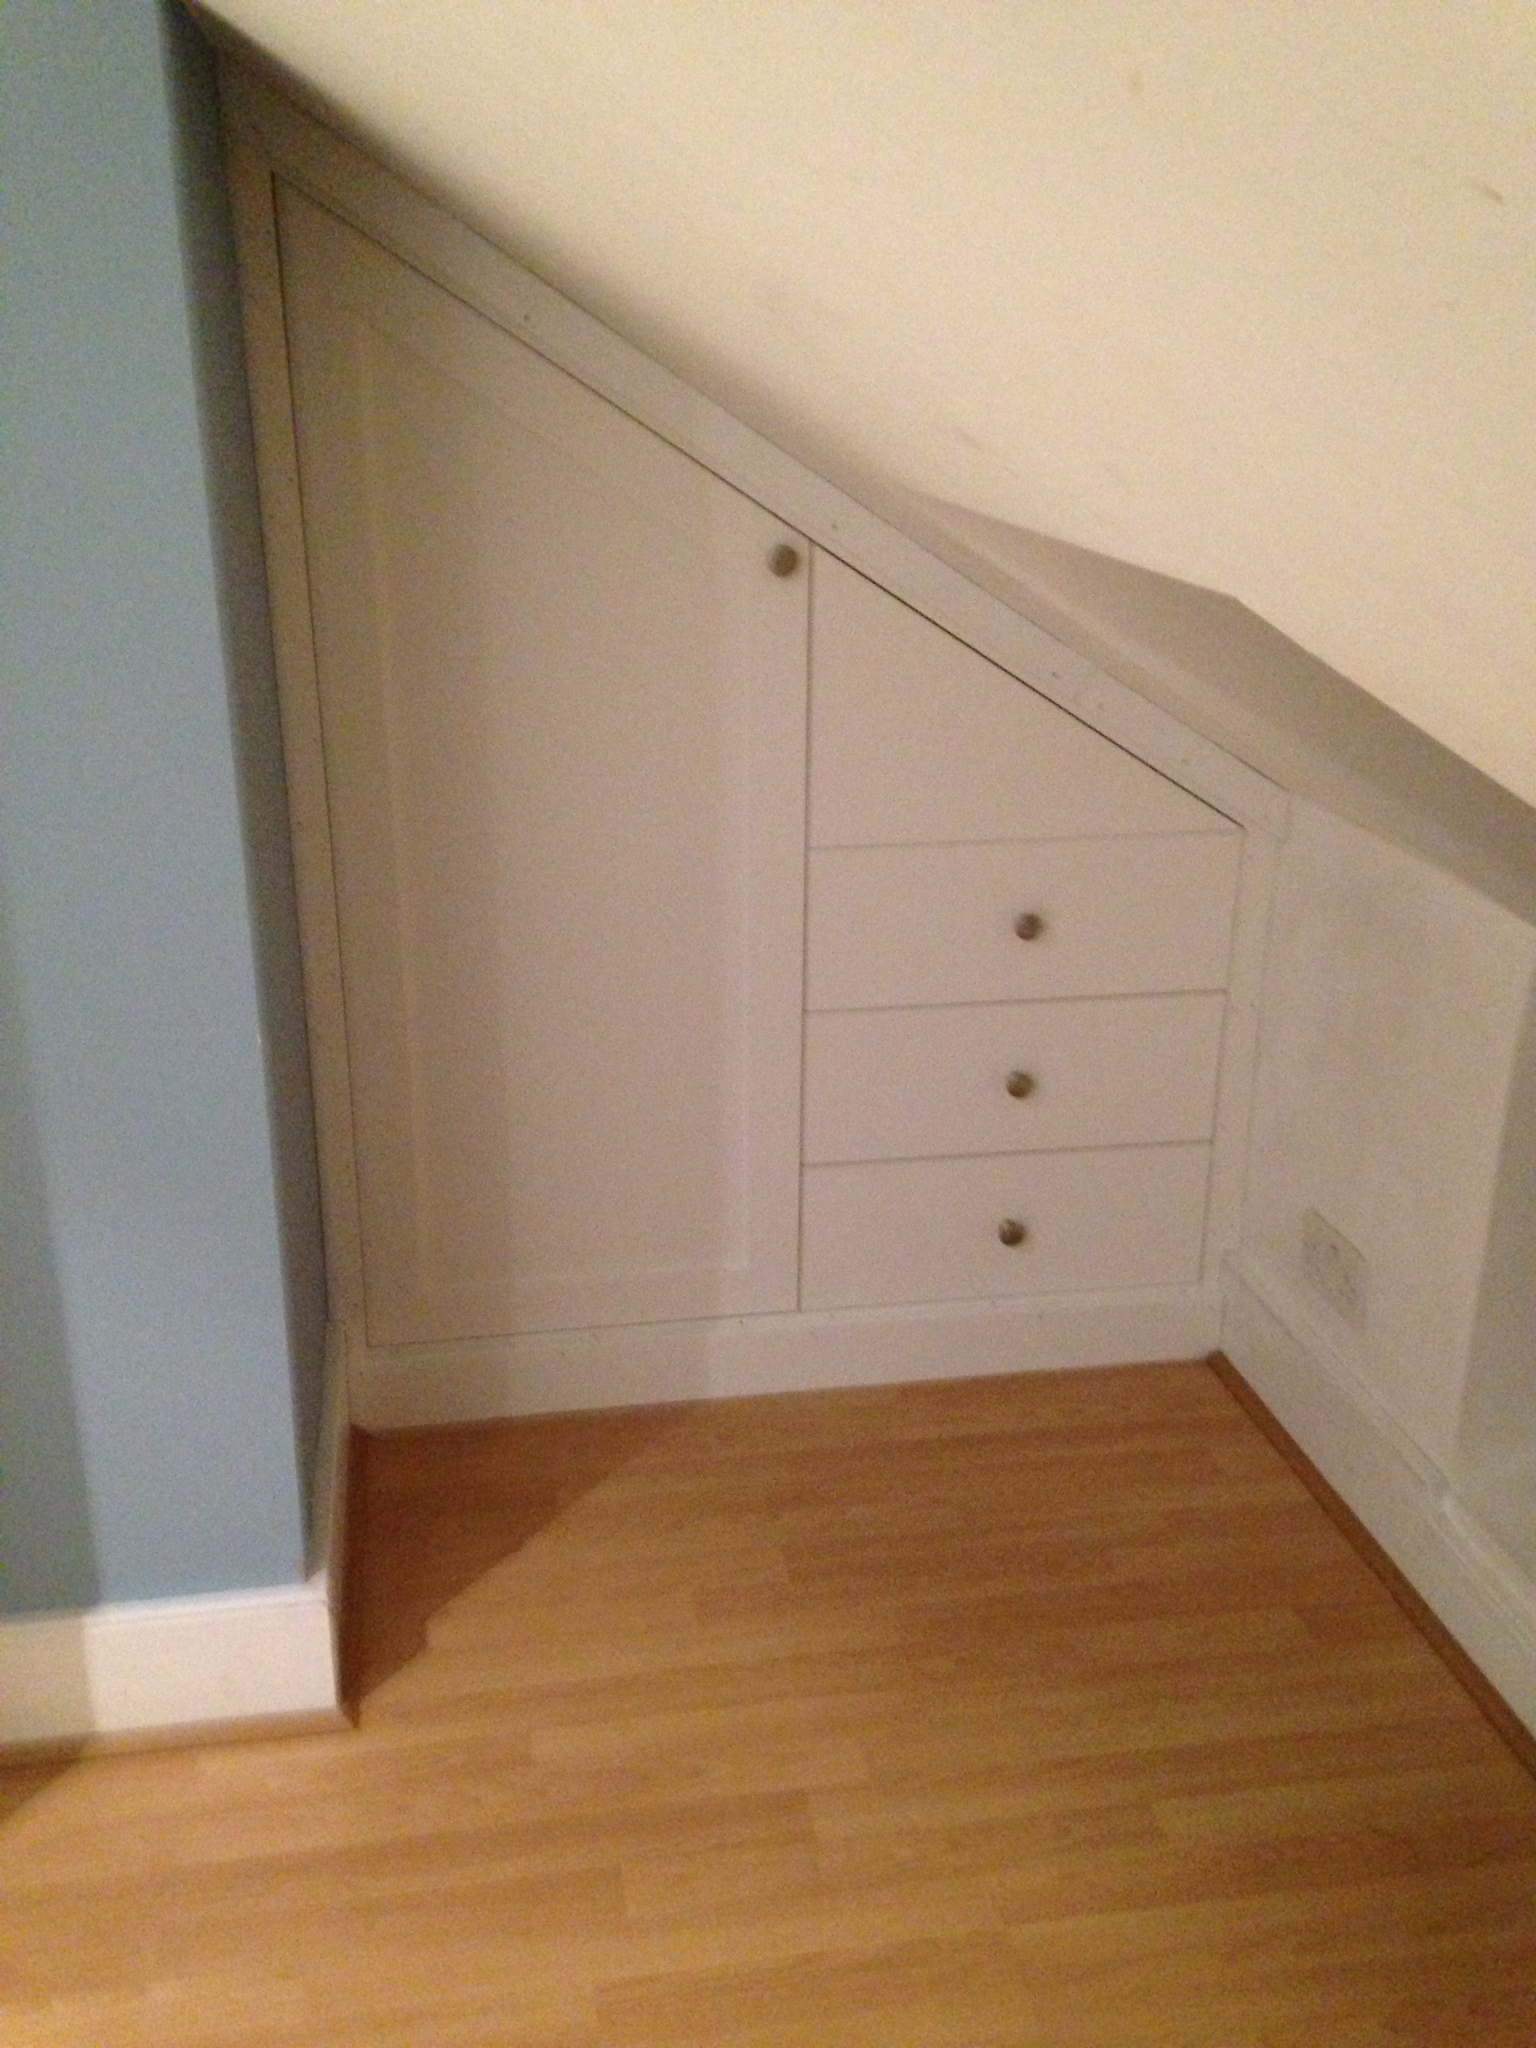 An awkward small space made bedroom friendly with this bespoke angled wardrobe unit.